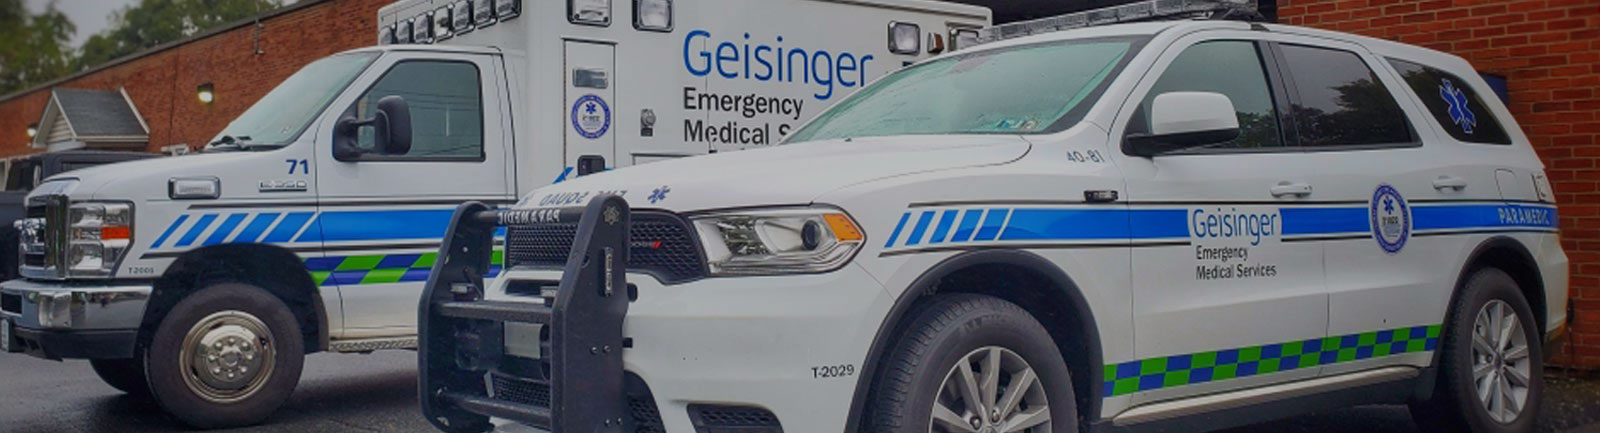 geisinger ems vehicles